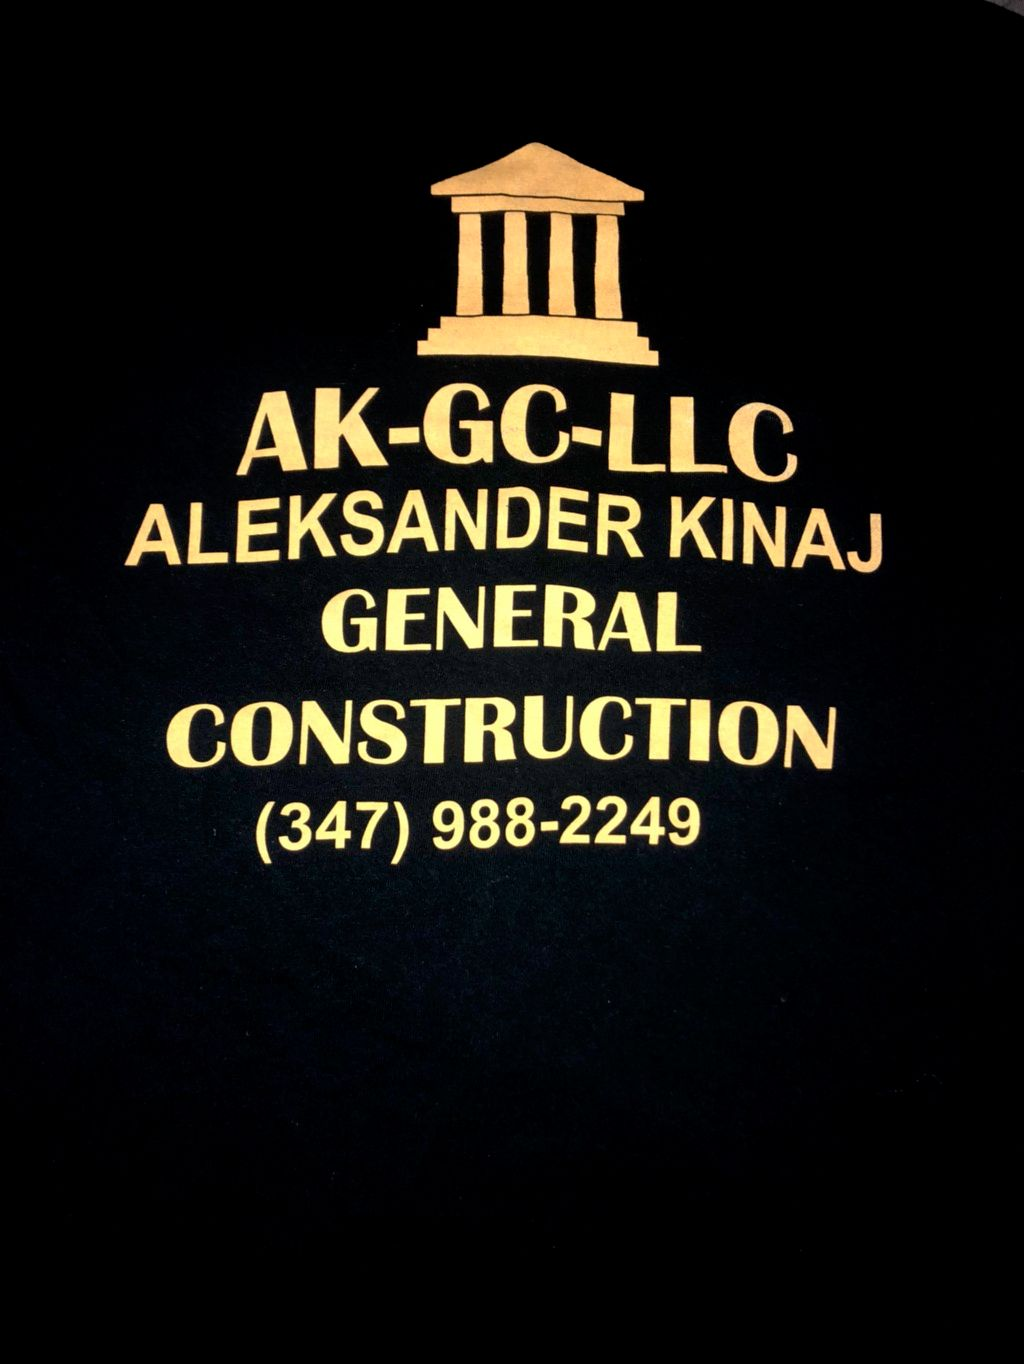 Alex-  Ak/Gc/llc